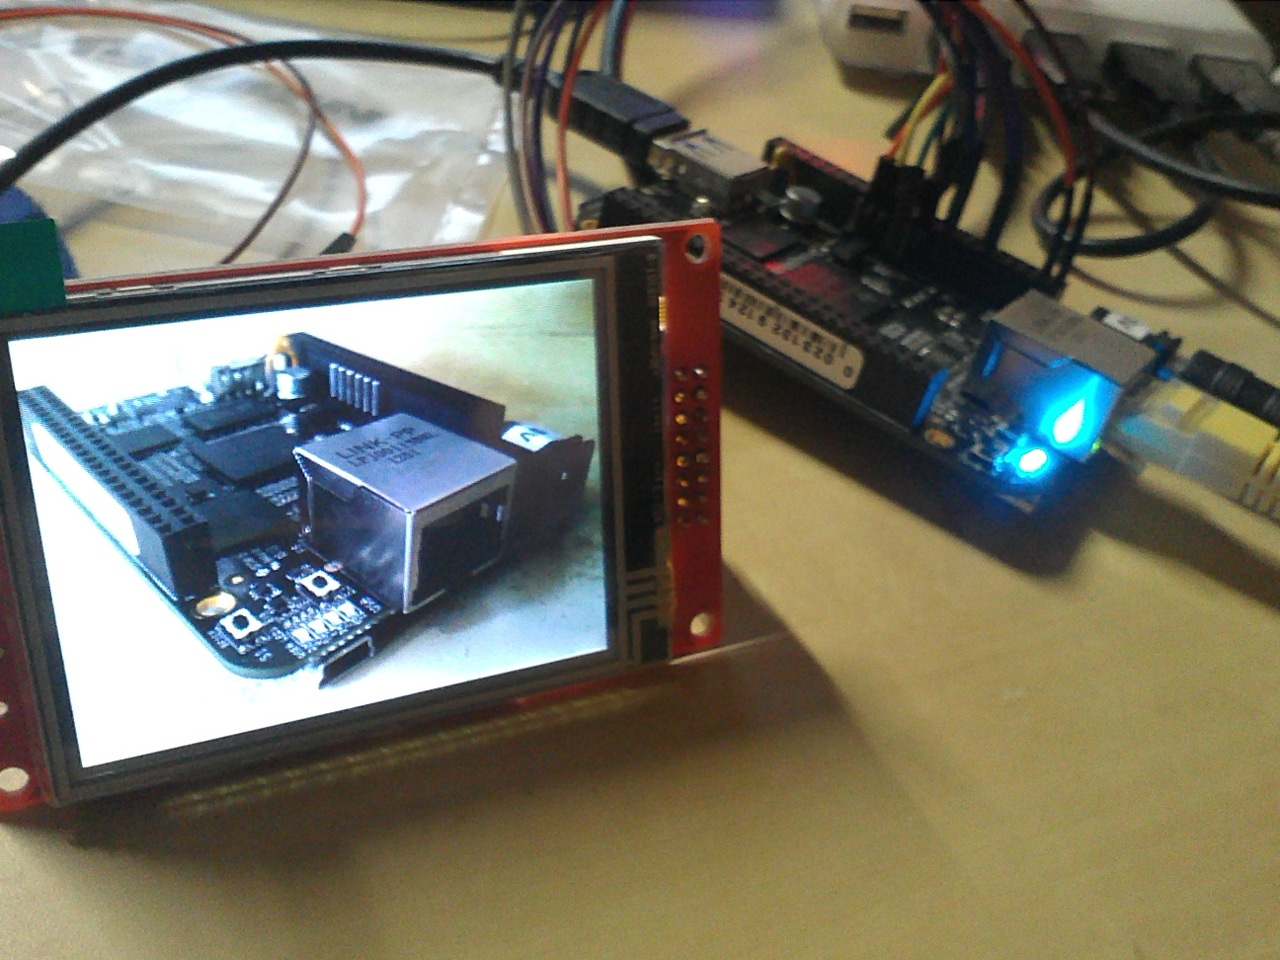 BeagleBone Black and Watterott display